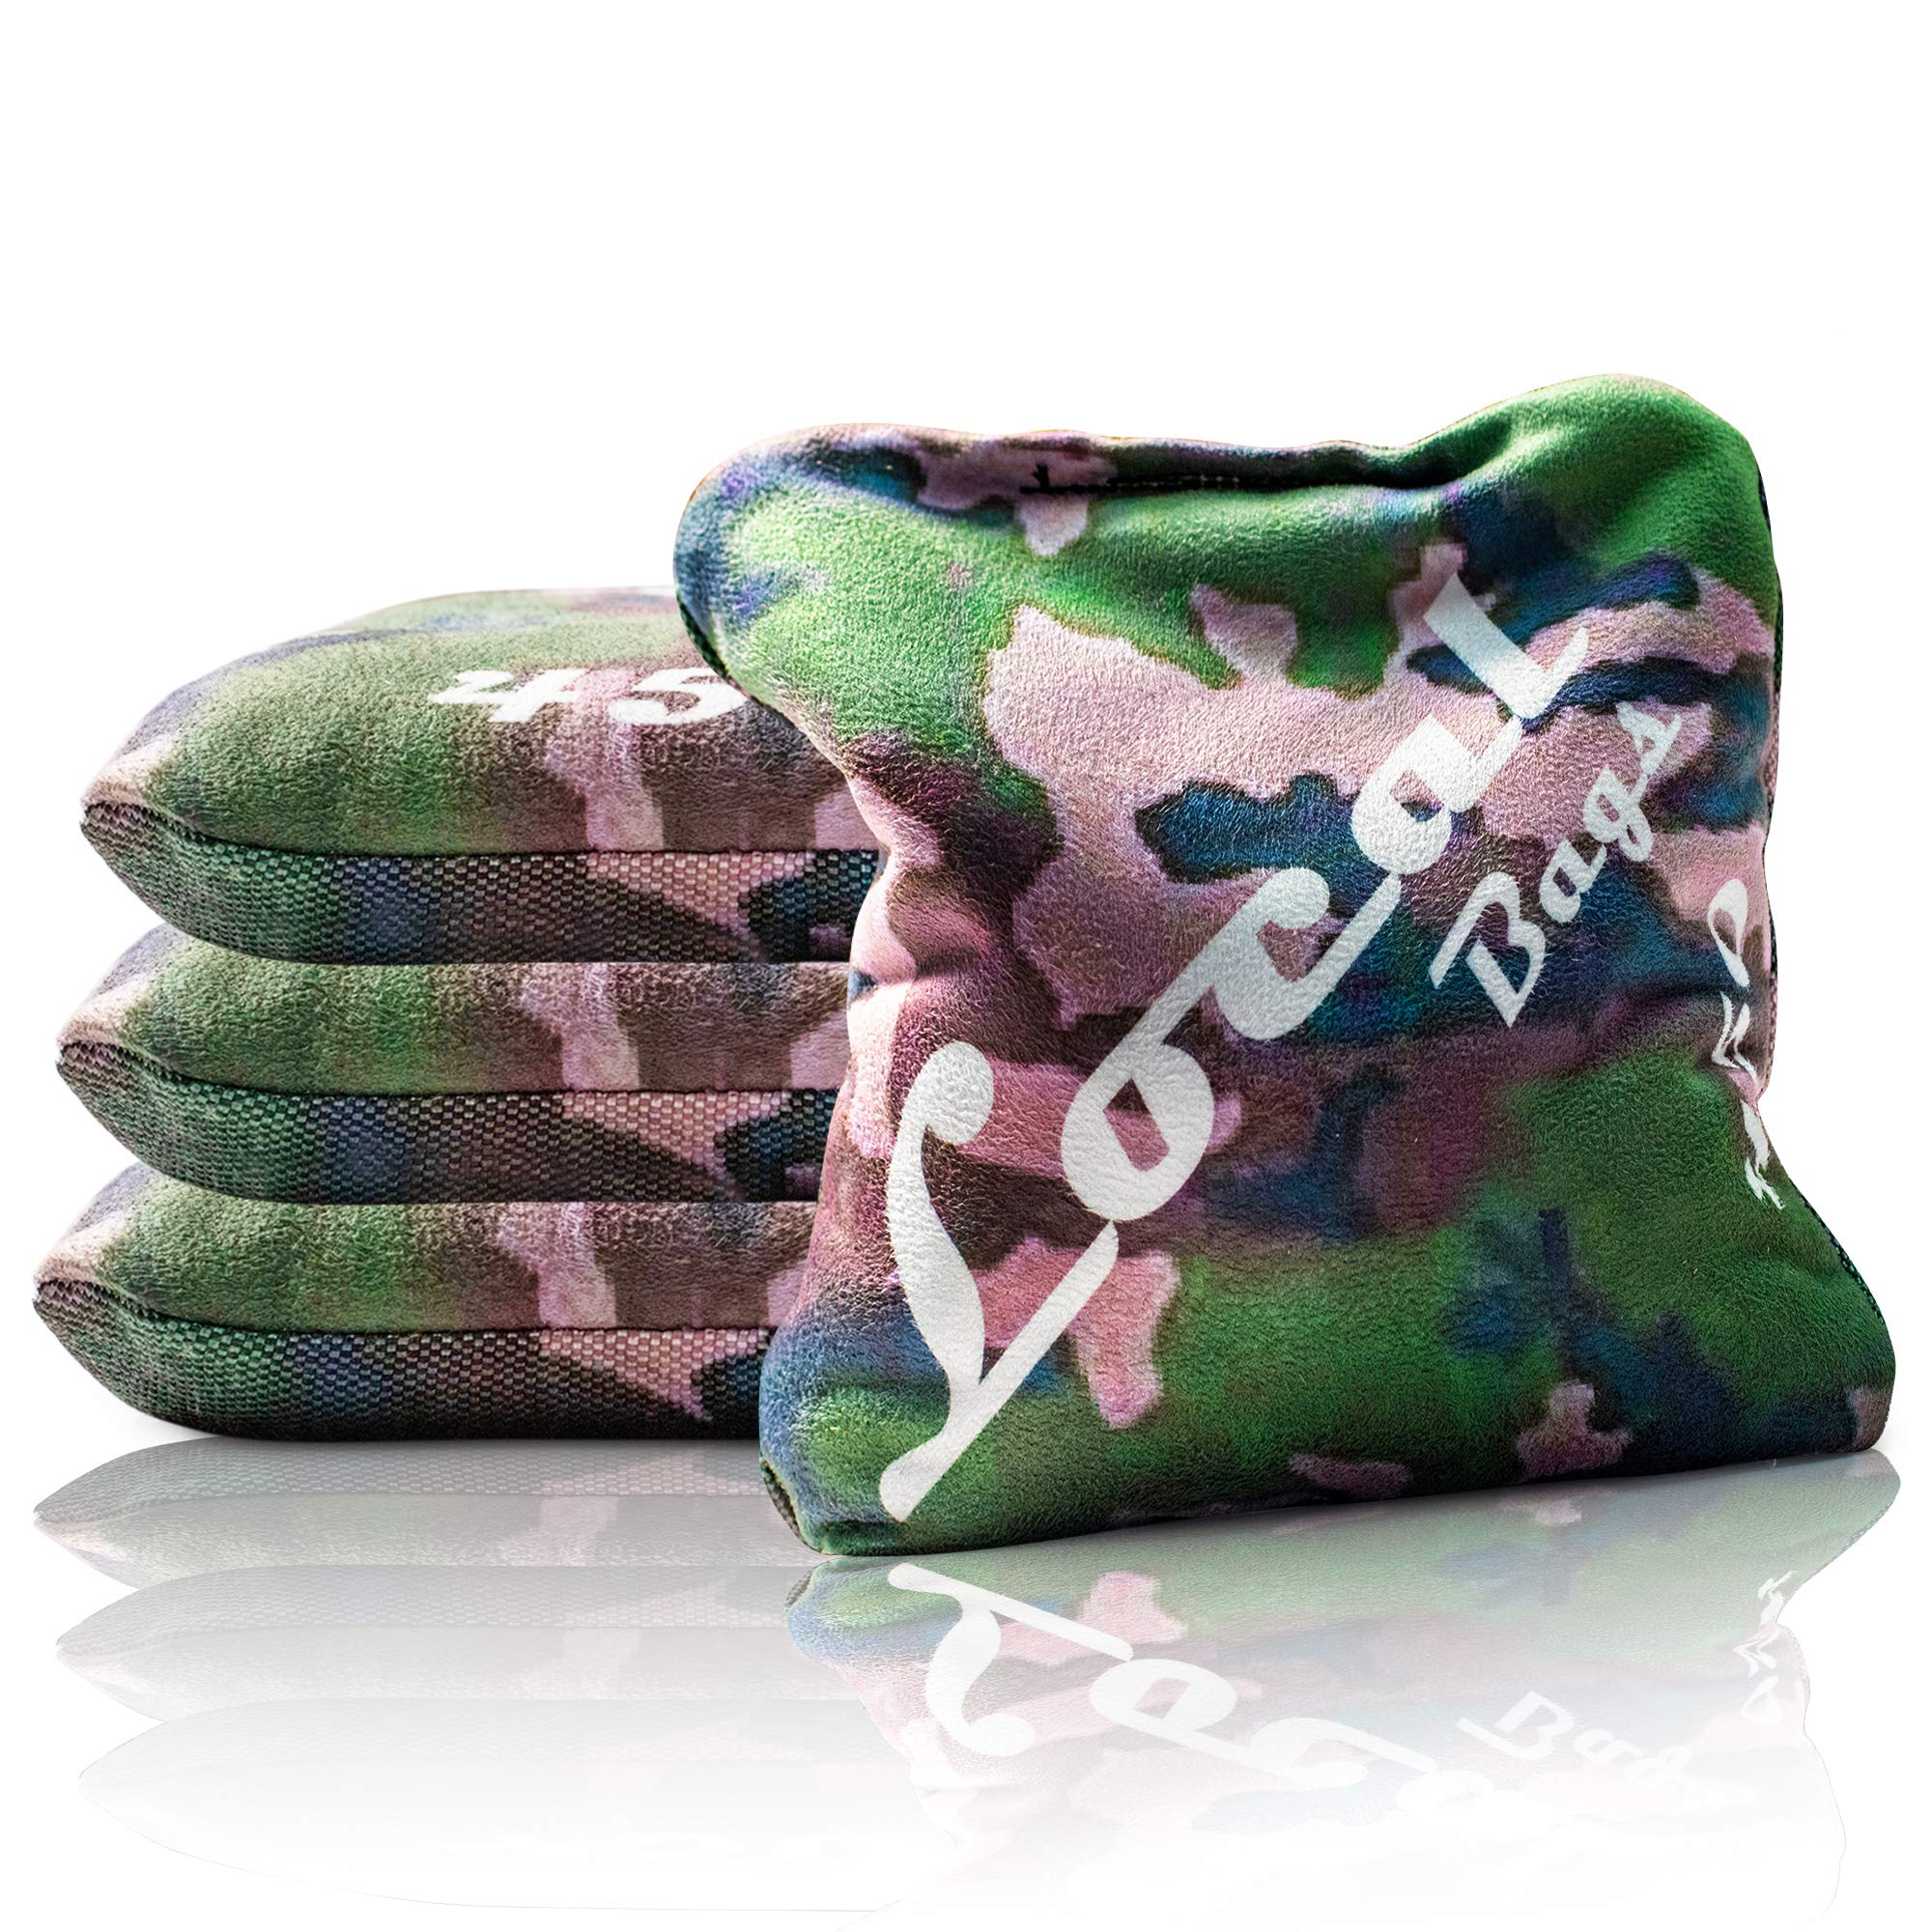 Local Bags Cornhole - 450's Series - Set of 4 Bags- ACL Approved Resin Filled - Double Sided - Sticky Side/Slick Side Made in USA (Army Camo) by Local Bags